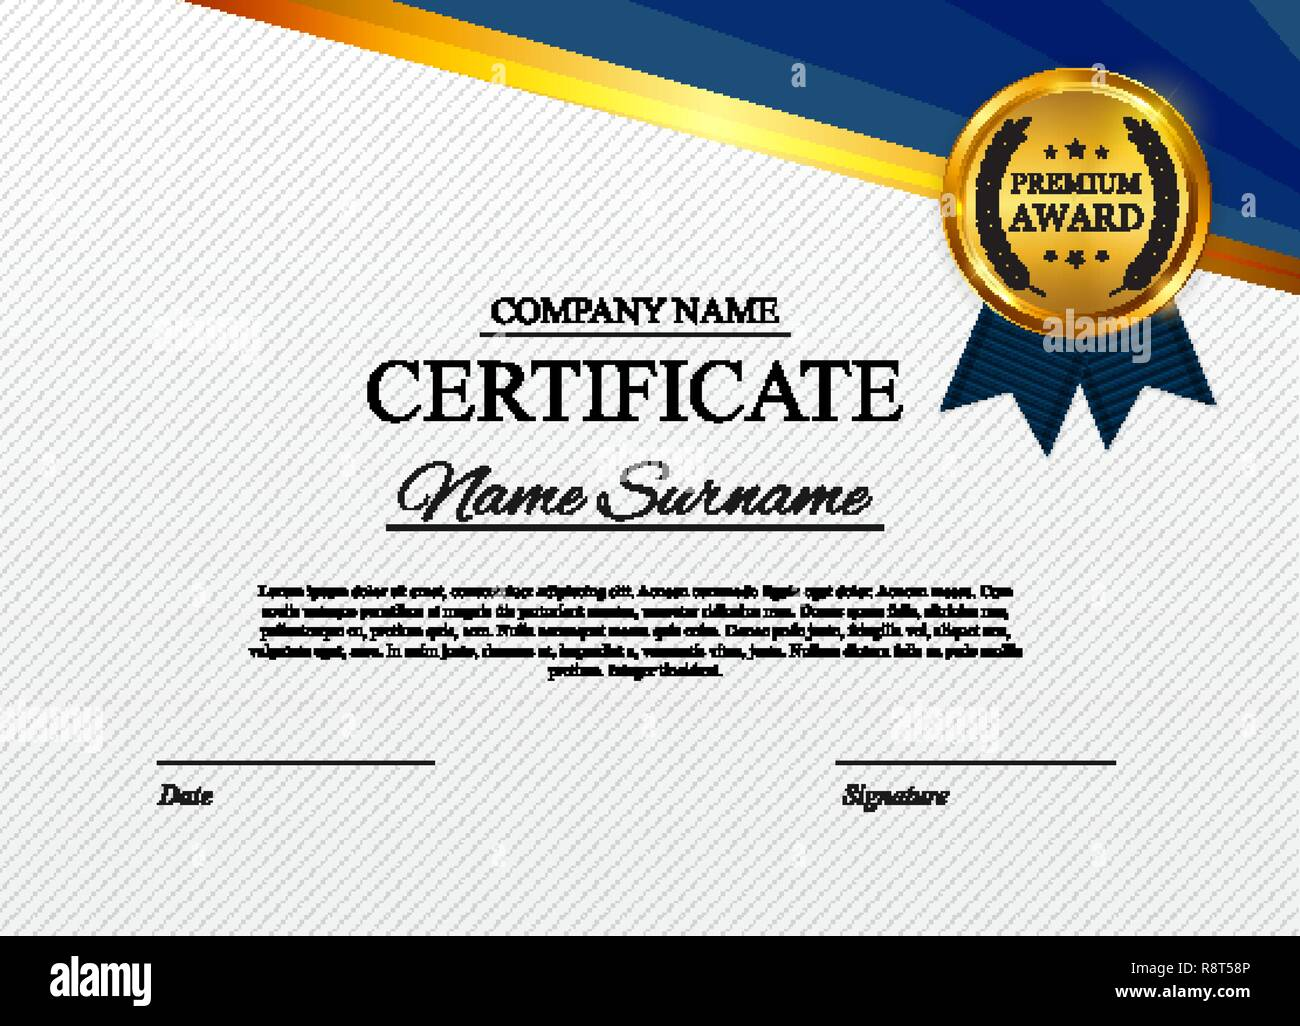 Certificate template Background. Award diploma design blank Intended For Star Award Certificate Template